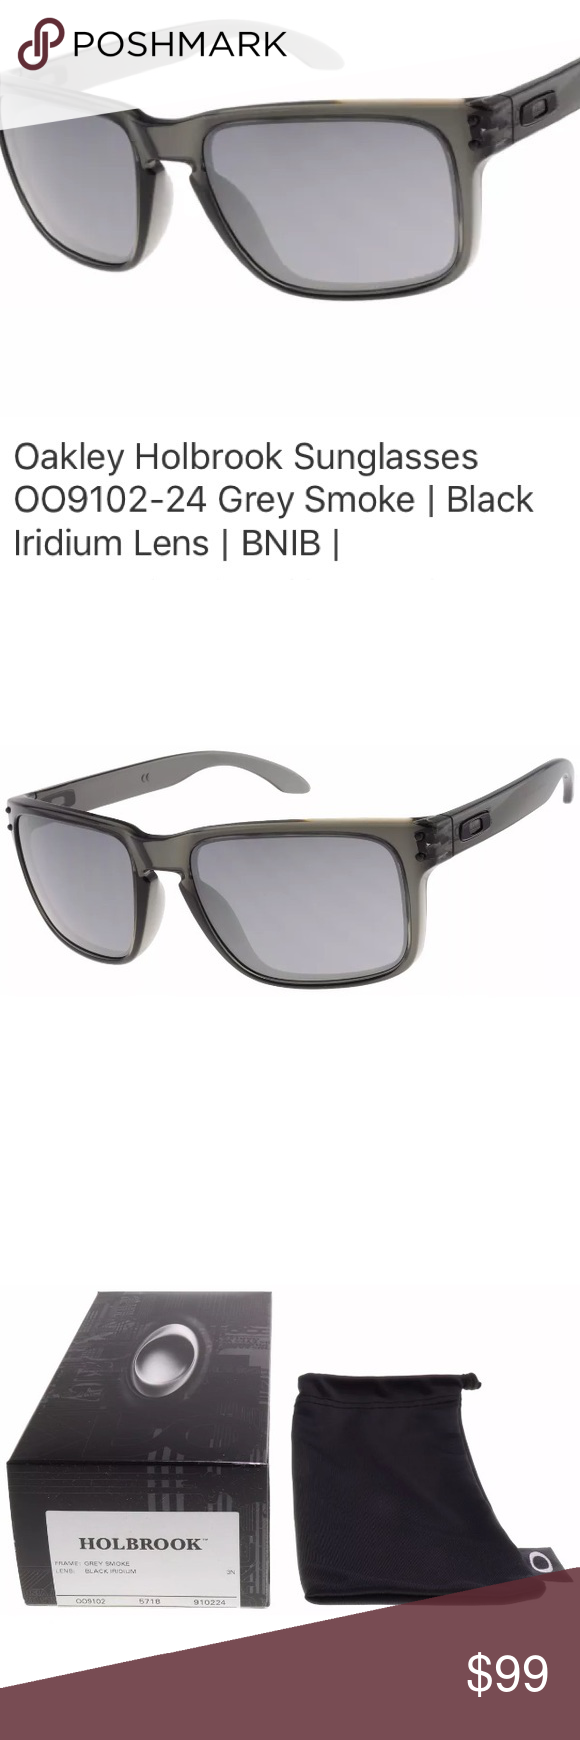 3f3890f187 Oakley Holbrook Sunglasses Iridium Lens New in box. Comes with soft carry  case Oakley Holbrook Sunglasses OO9102-24 Grey Smoke